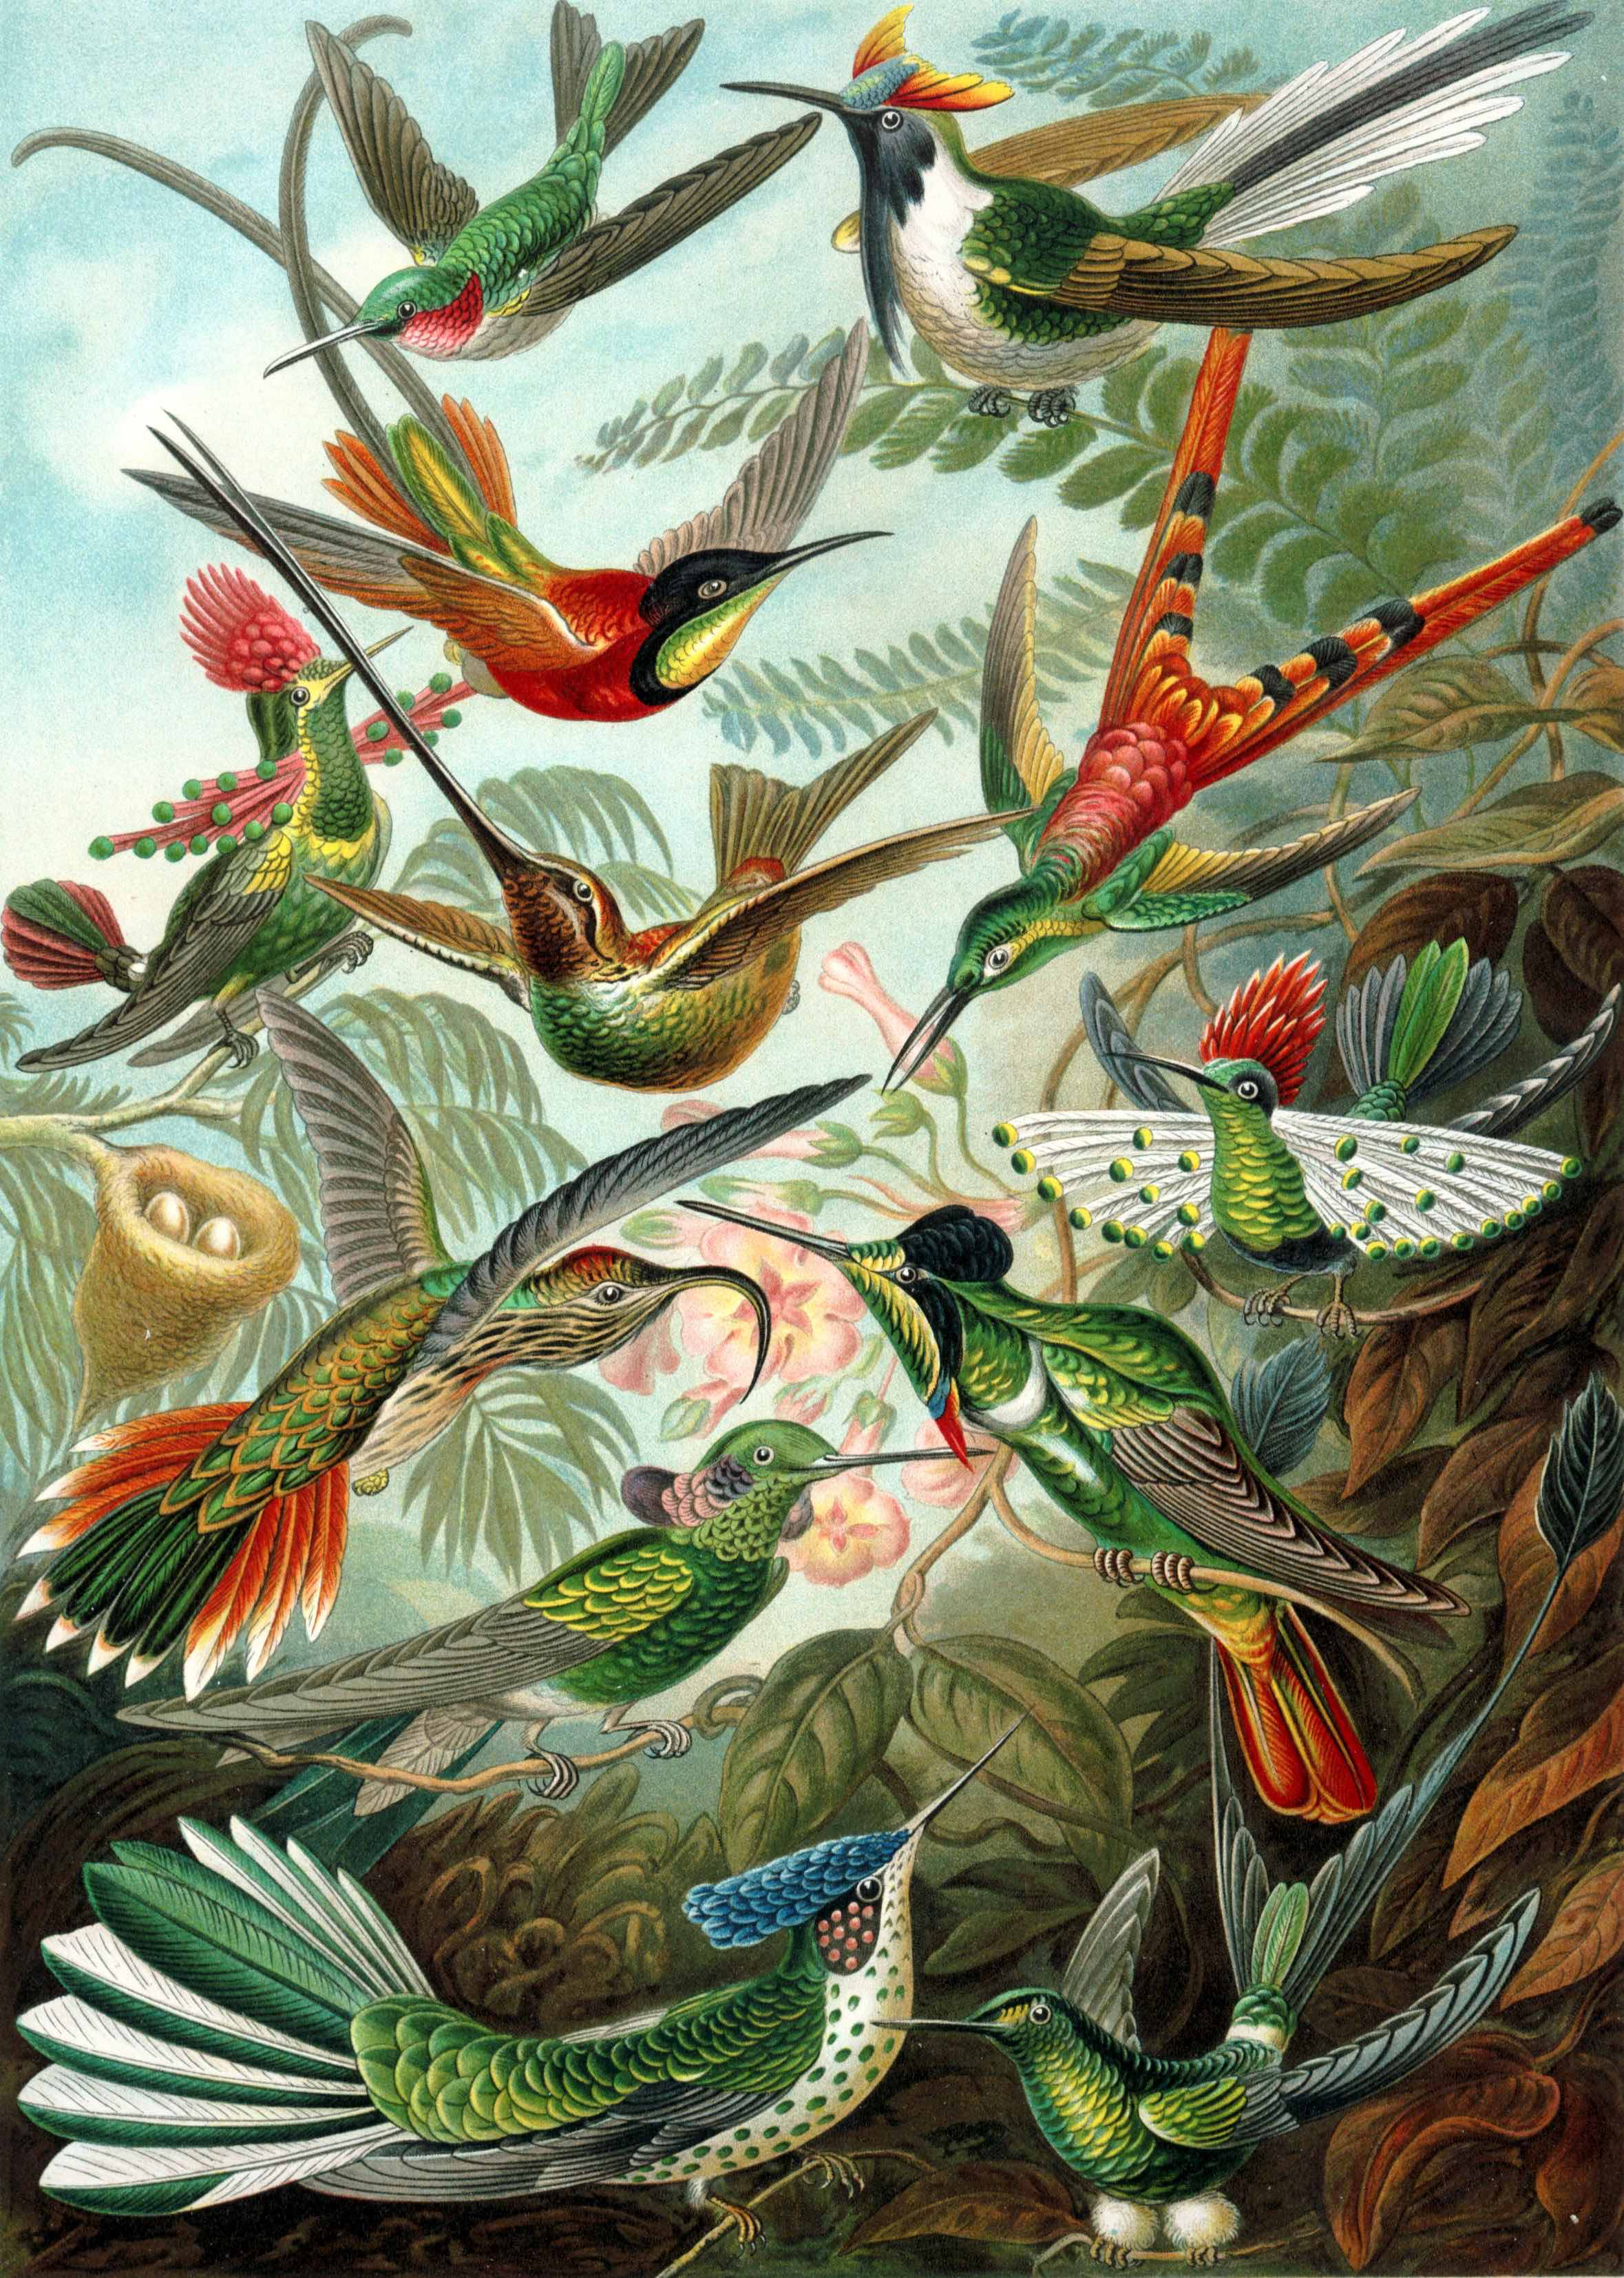 Haeckel's Trochilidae. In the Public Domain.